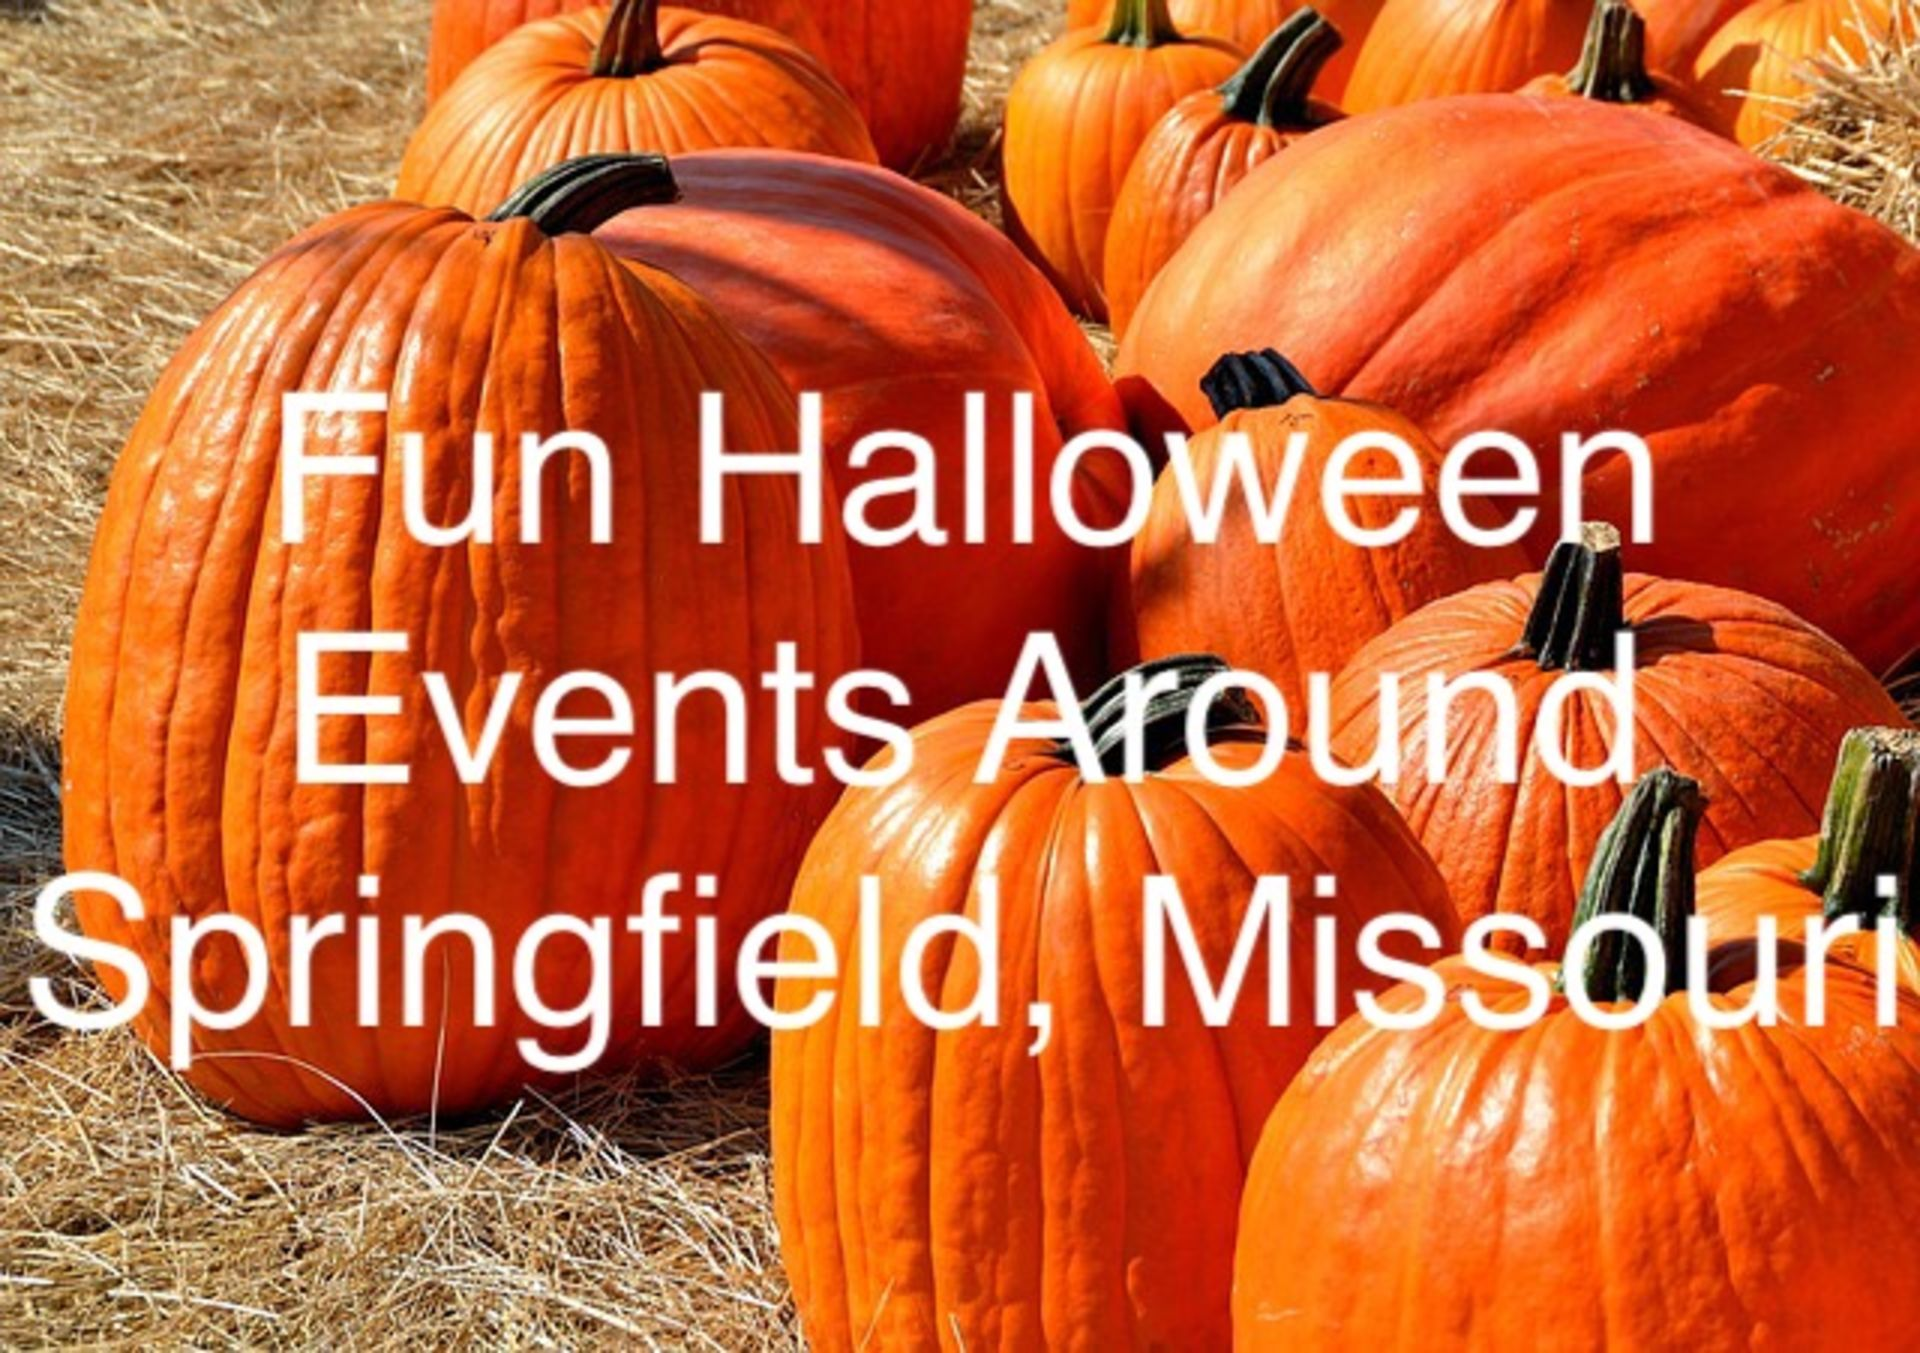 Four Fun Things Halloween Events around Springfield, Missouri!